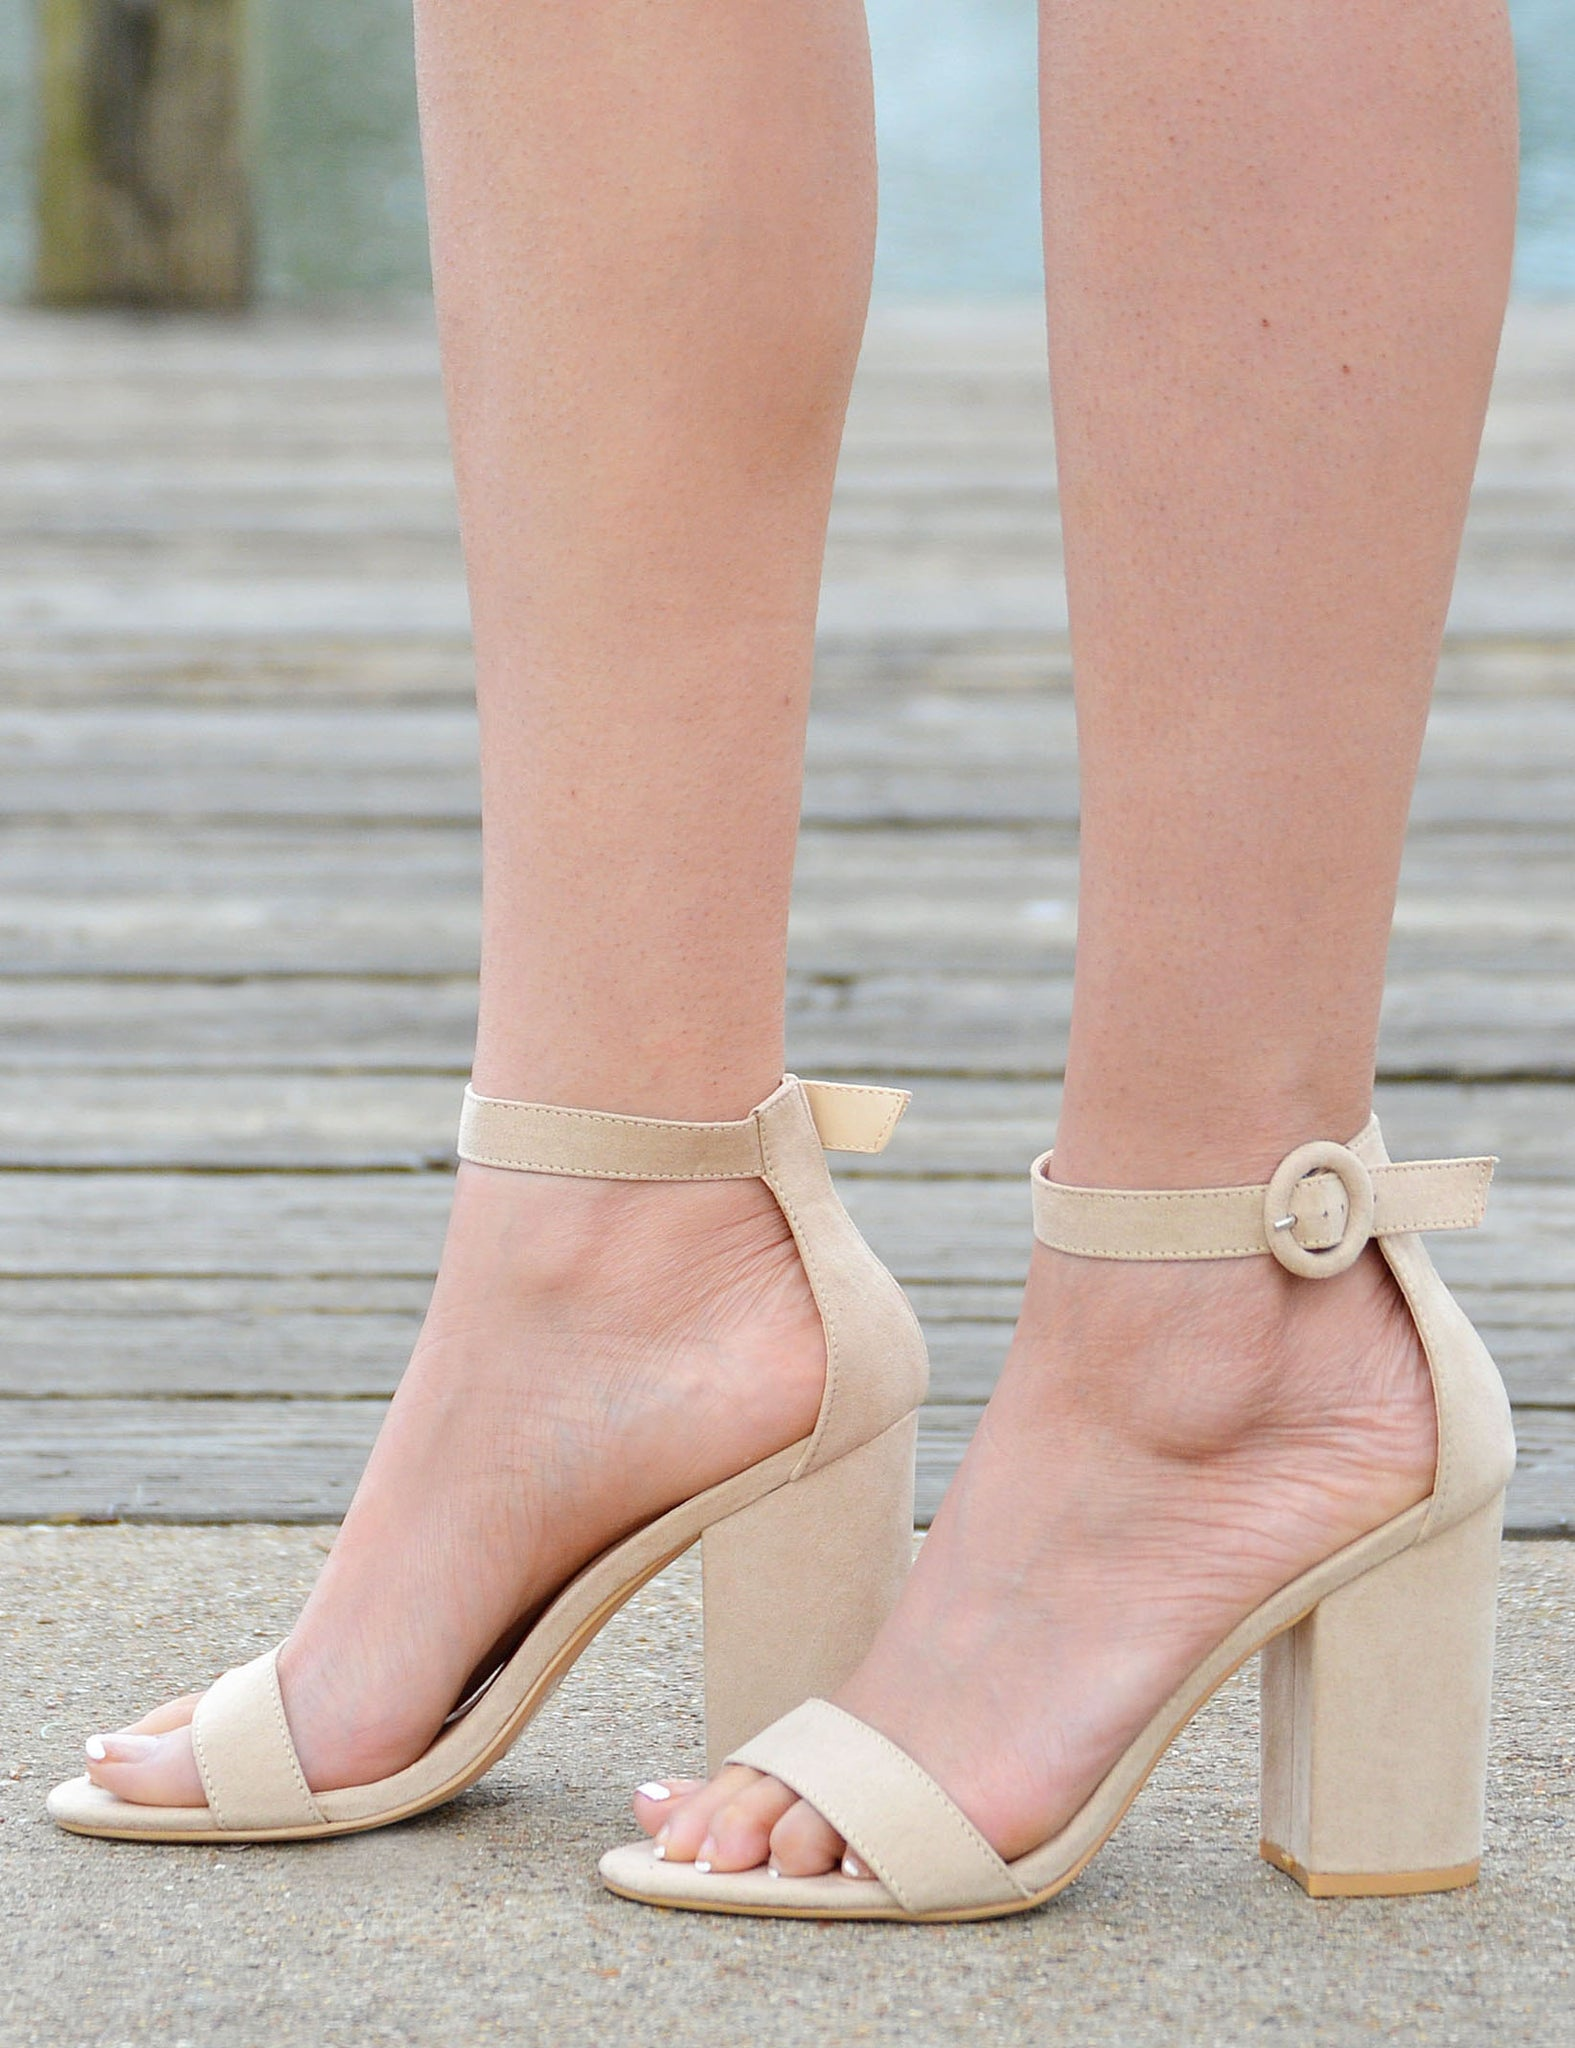 Women's Open Toe Platform Chunky Heels - Beige - Boutique Shoes